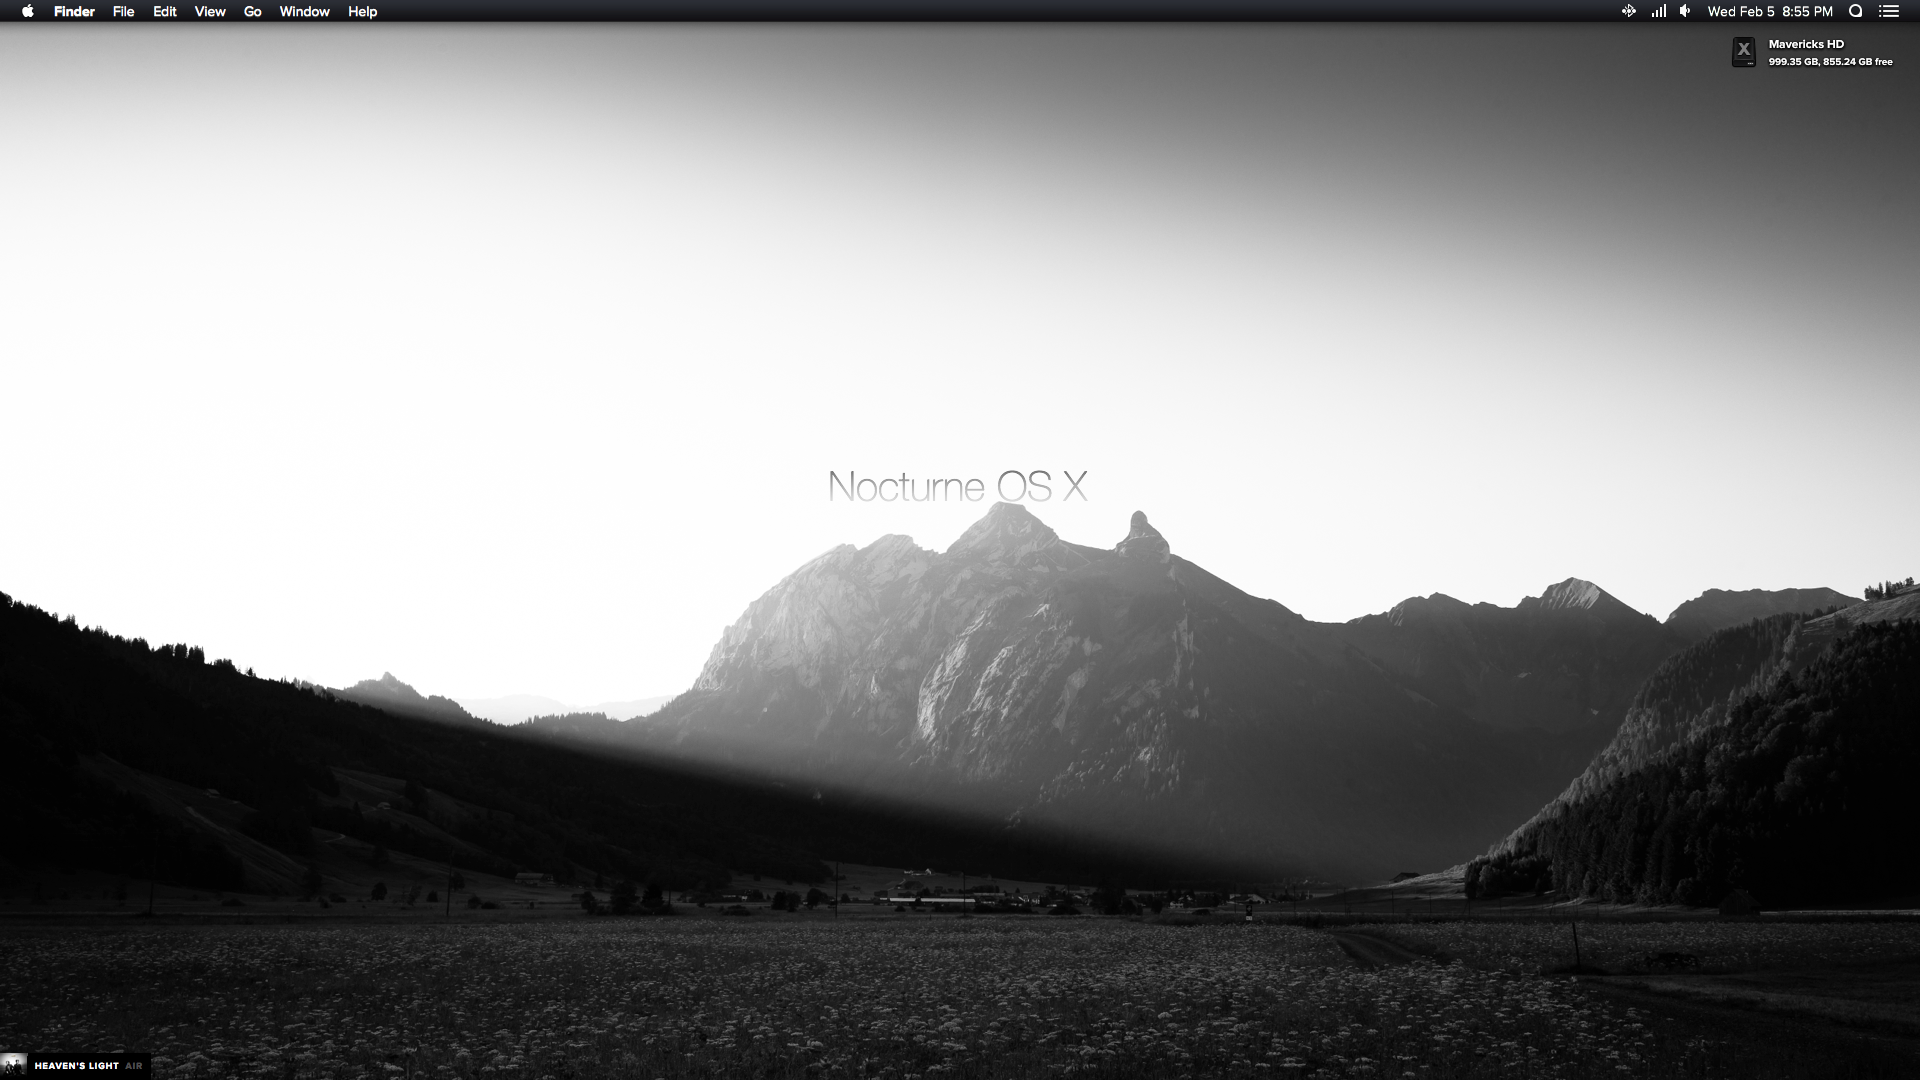 Nocturne Theme For OS X 10.9.x